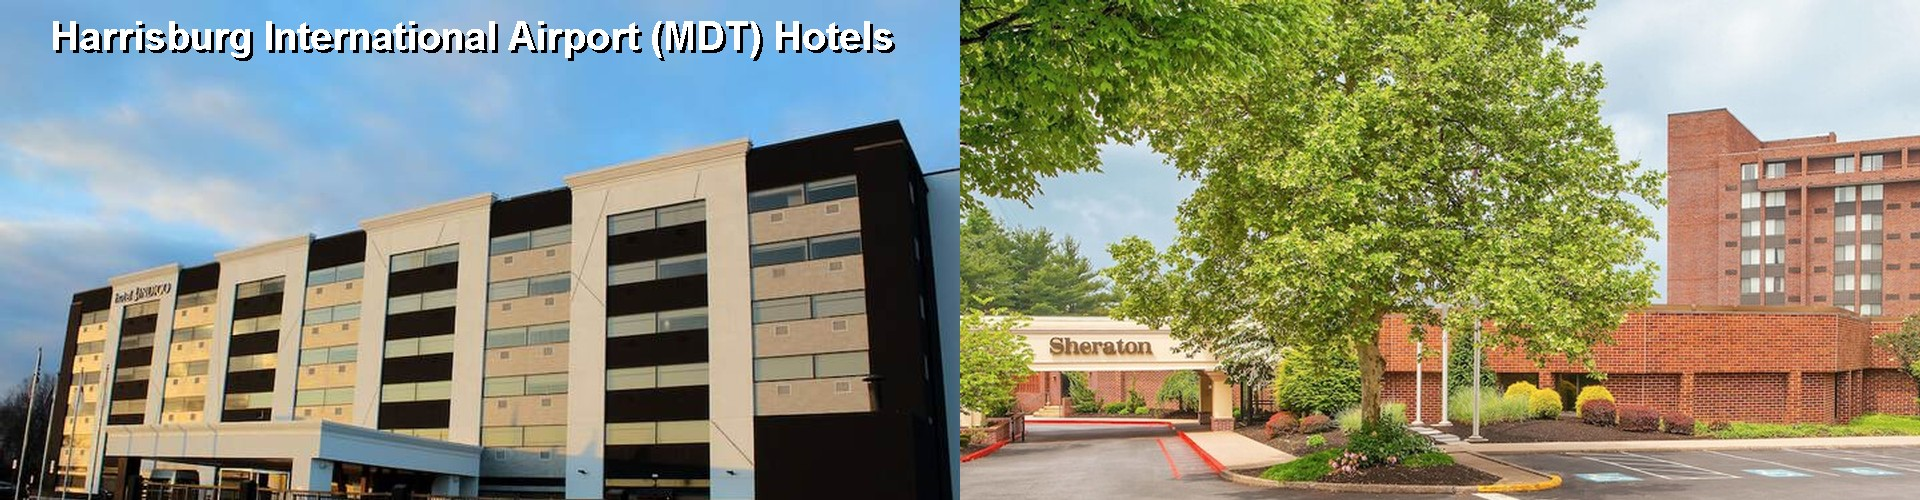 5 Best Hotels near Harrisburg International Airport (MDT)